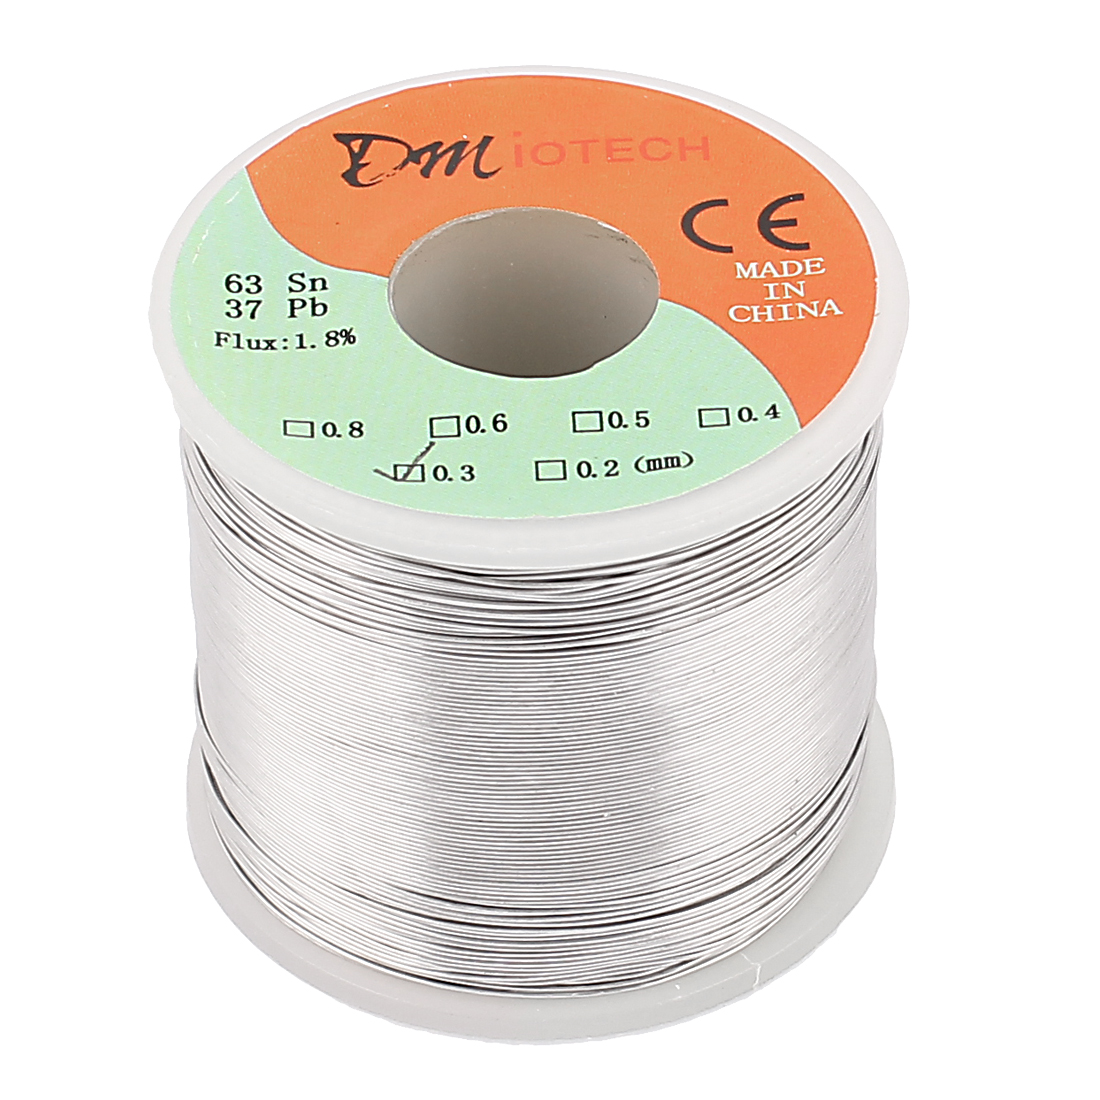 0.3mm Rosin Core Solder Tin Lead Solder Wire 63/37 for Electrical Soldering 400g